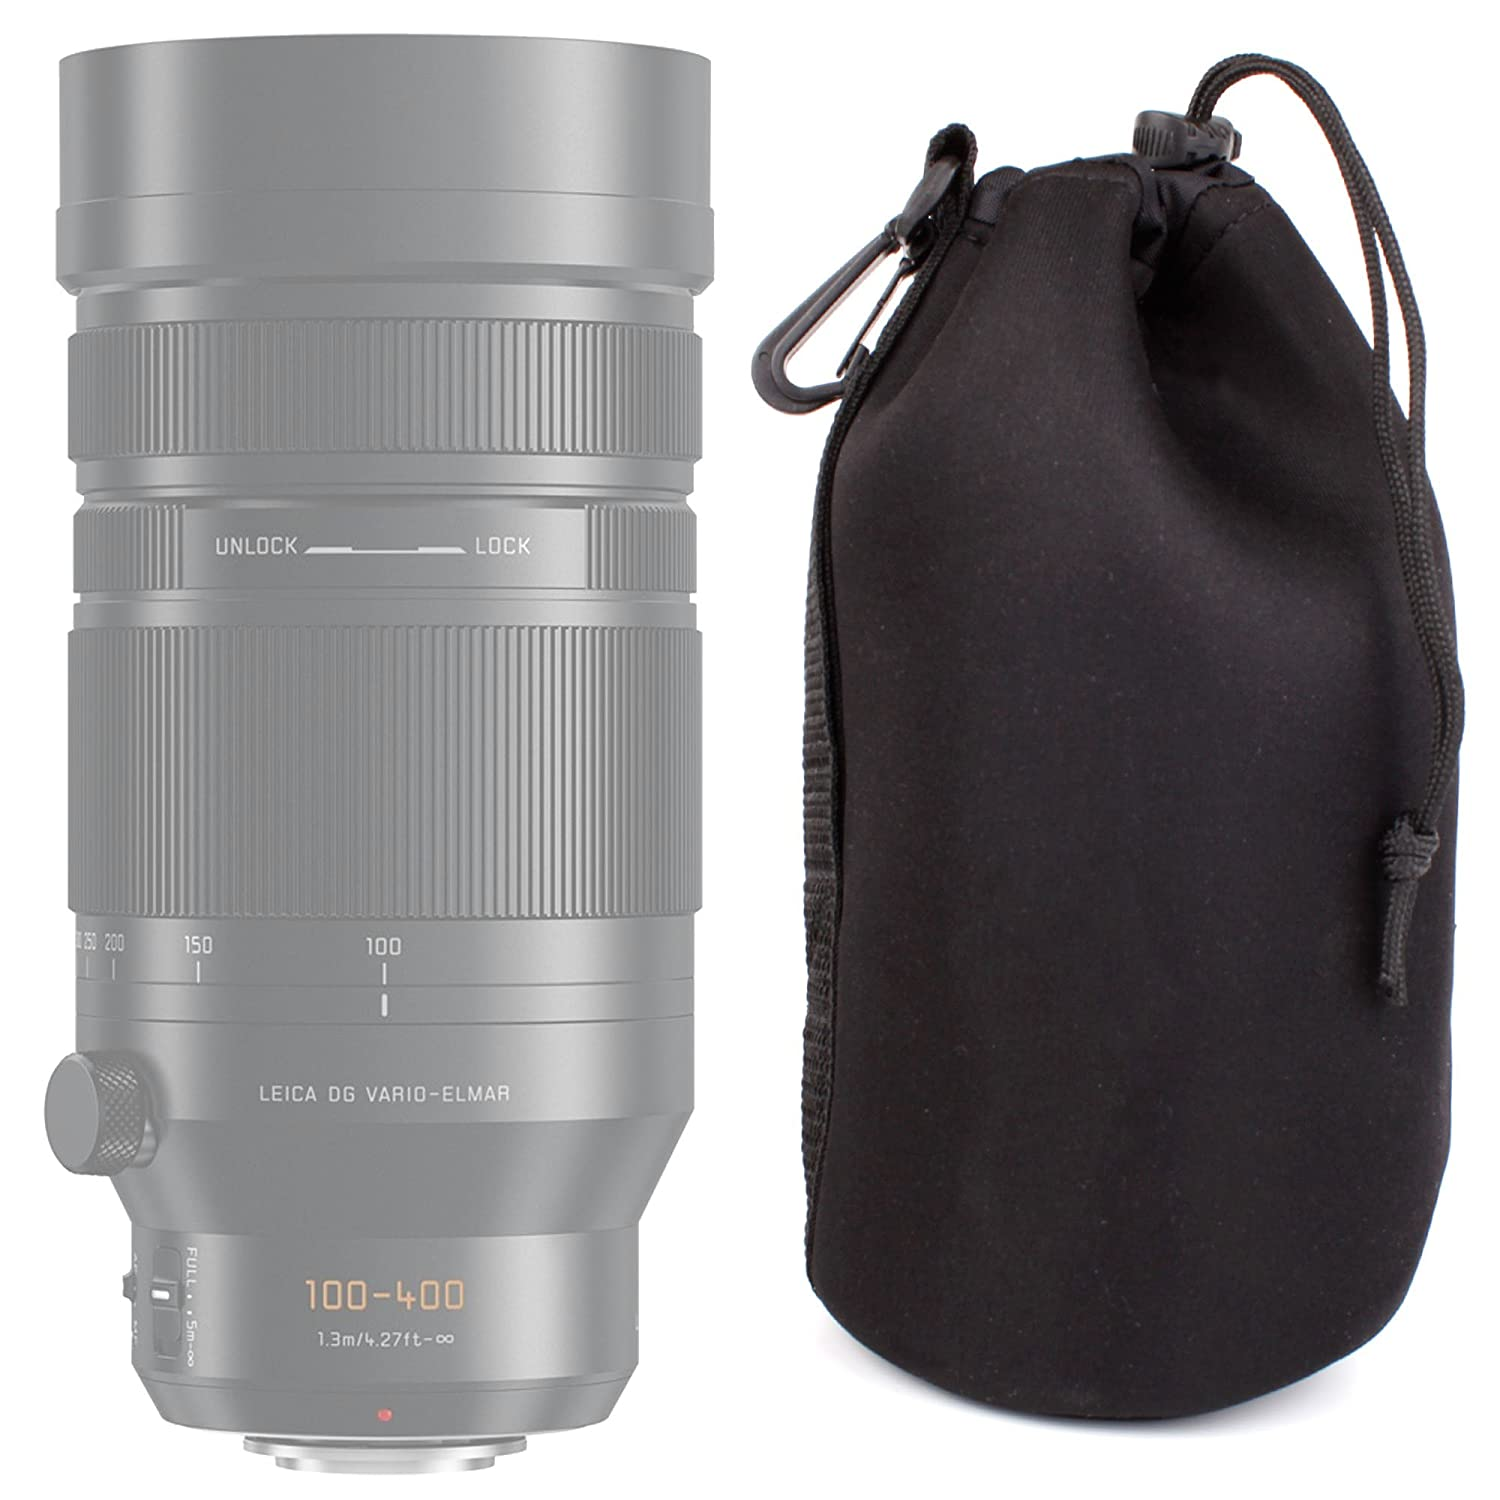 DURAGADGET Black Soft Neoprene Large-Sized Camera Lens Pouch/Case for the Panasonic Leica DG Vario-Elmar 100-400mm F4.0-6.3 ASPH Power OIS Lens 5054646710453